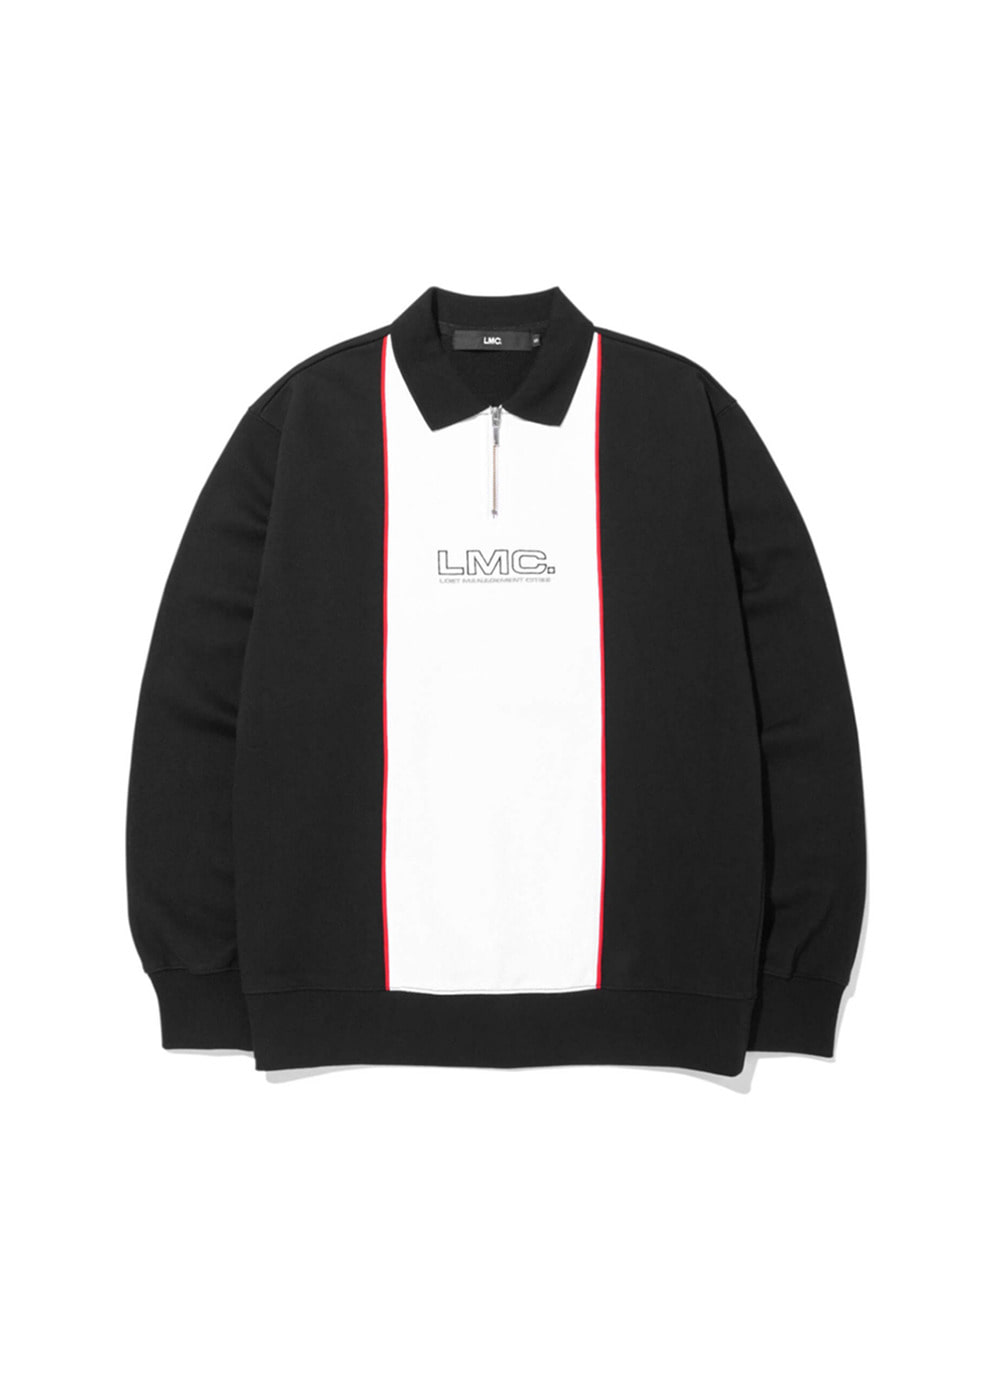 LMC COLLAR QUARTER ZIP SWEATSHIRT black